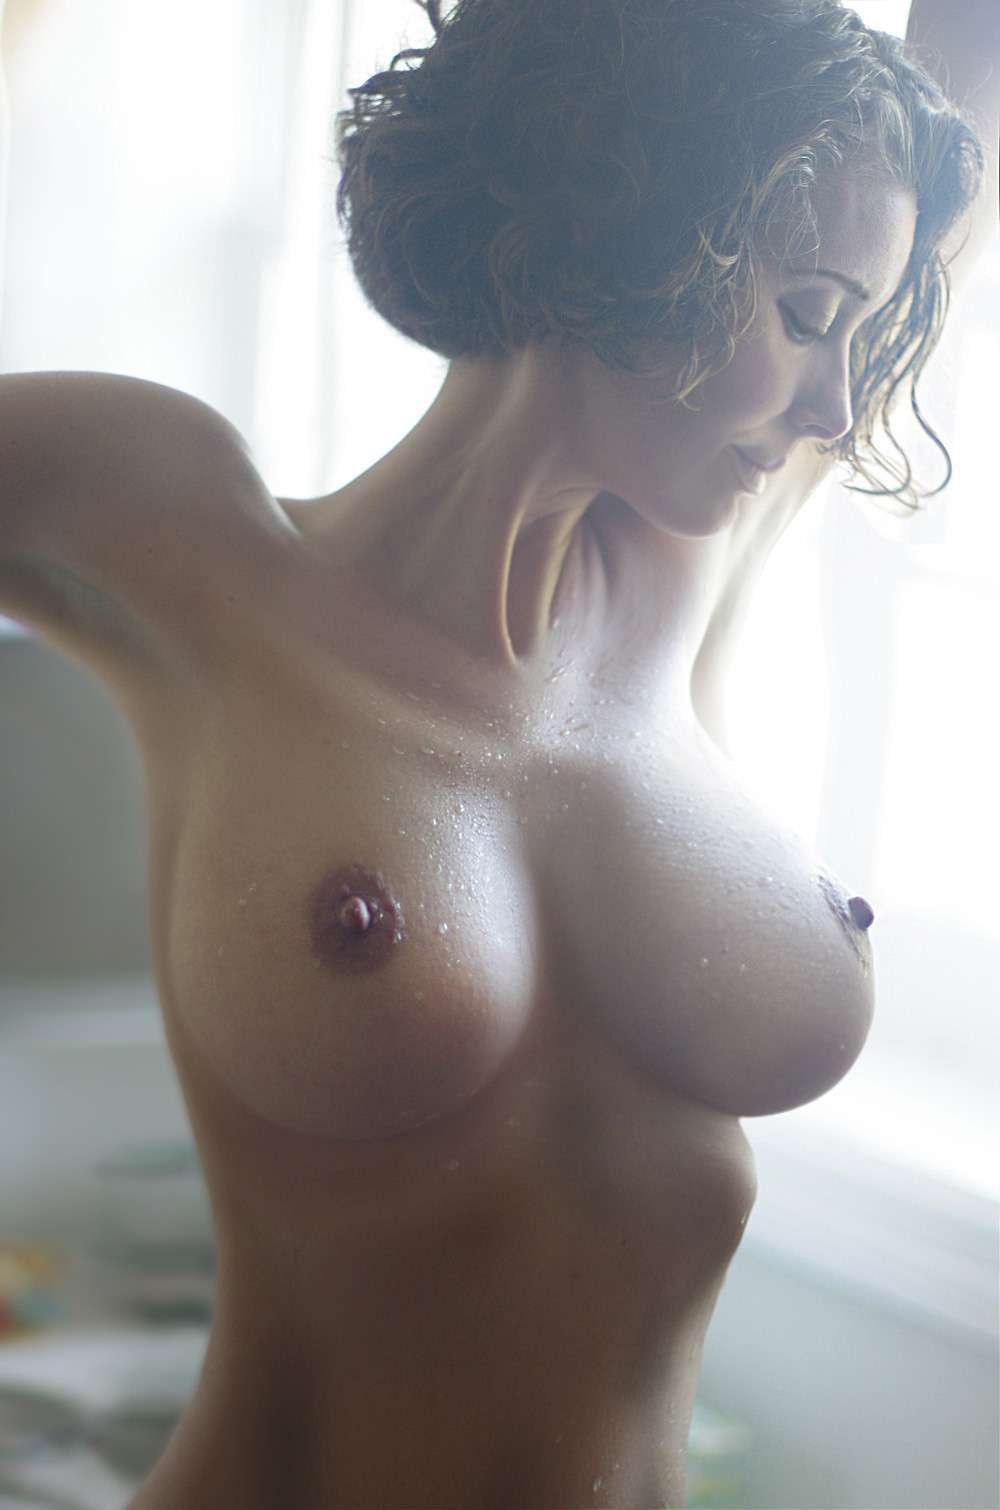 blonde hispanic chick tied on the bed and fucked hard Babe, Bigboobs, Bigboobs, Bignaturals, Bodacious, Boobs, Cougar, Fullfrontal, Goinhogwild, Milf, Mycumalloverthat, Nude, Pendulous, Pretty, Pussy